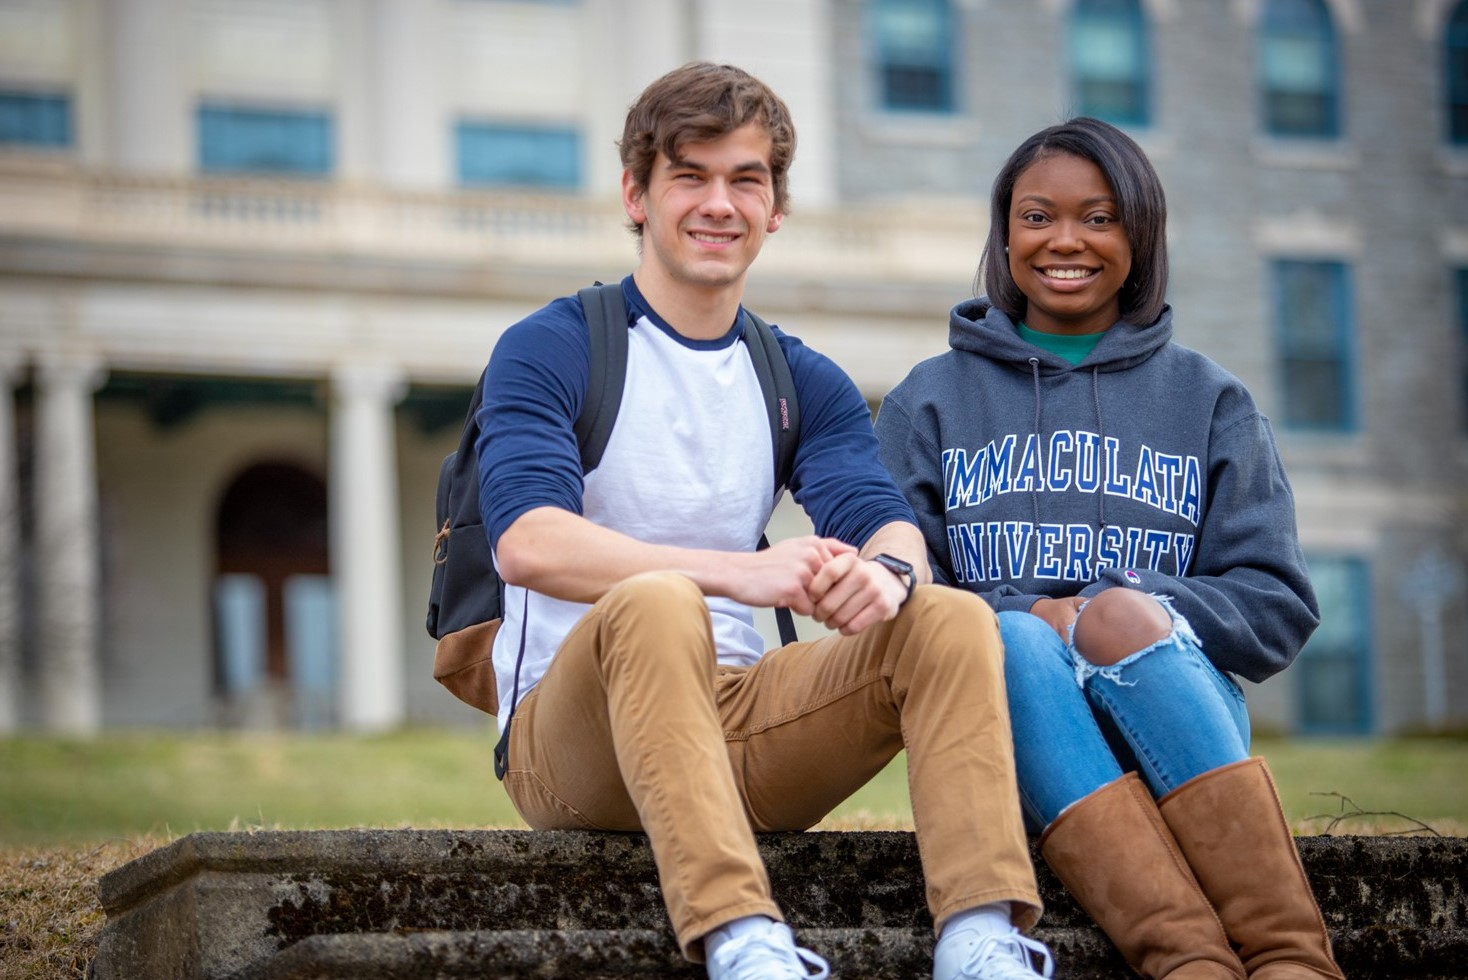 Immaculata to Host Online Open House for Undergrads